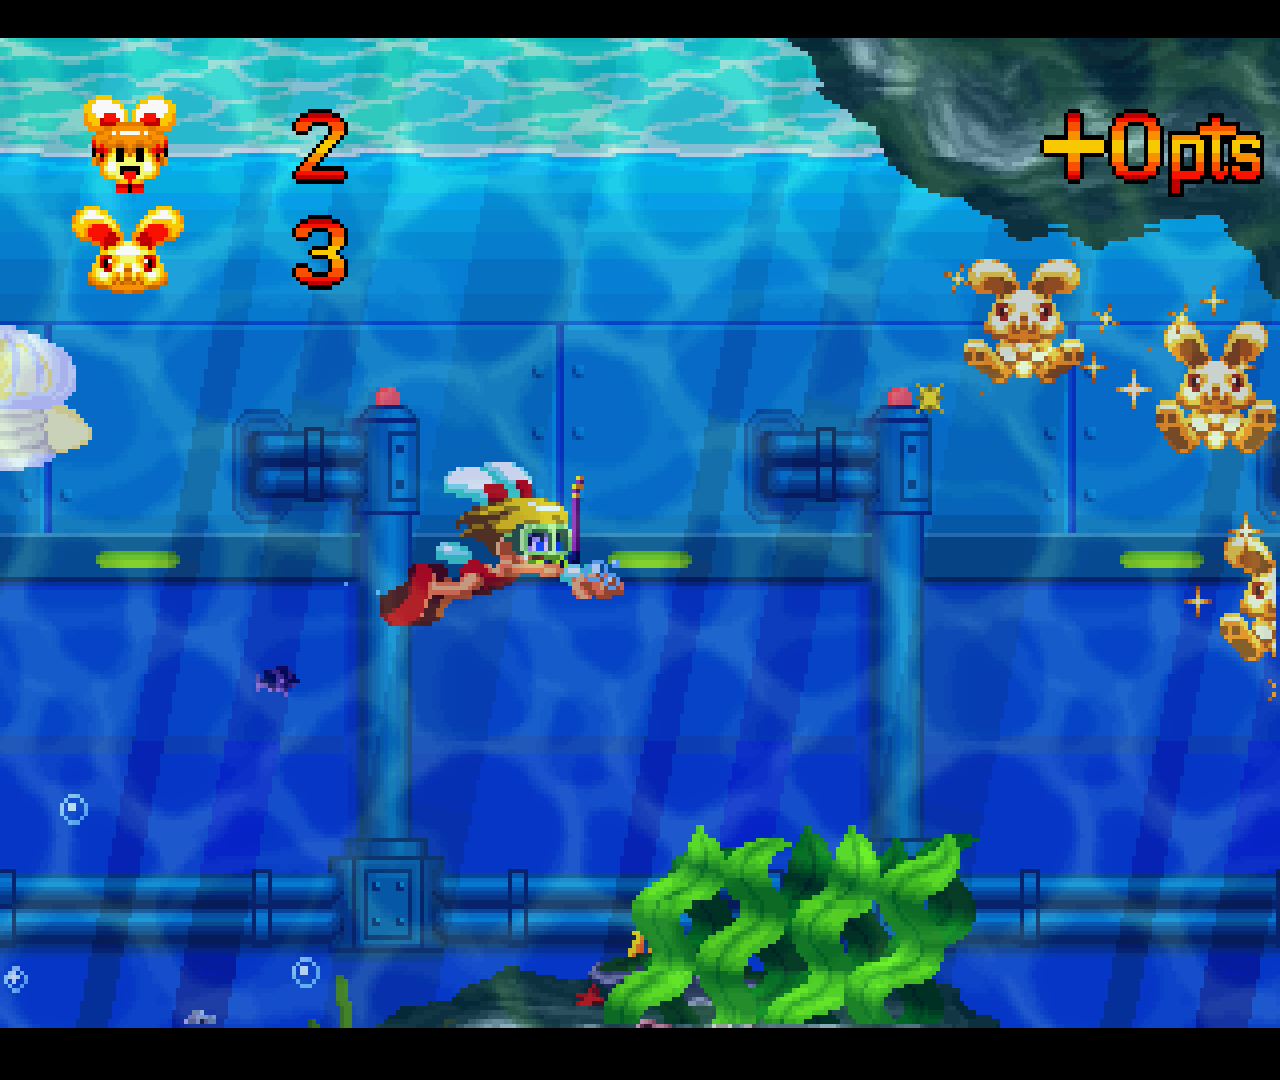 Figure 18 - Diving underwater. Note the bright colors